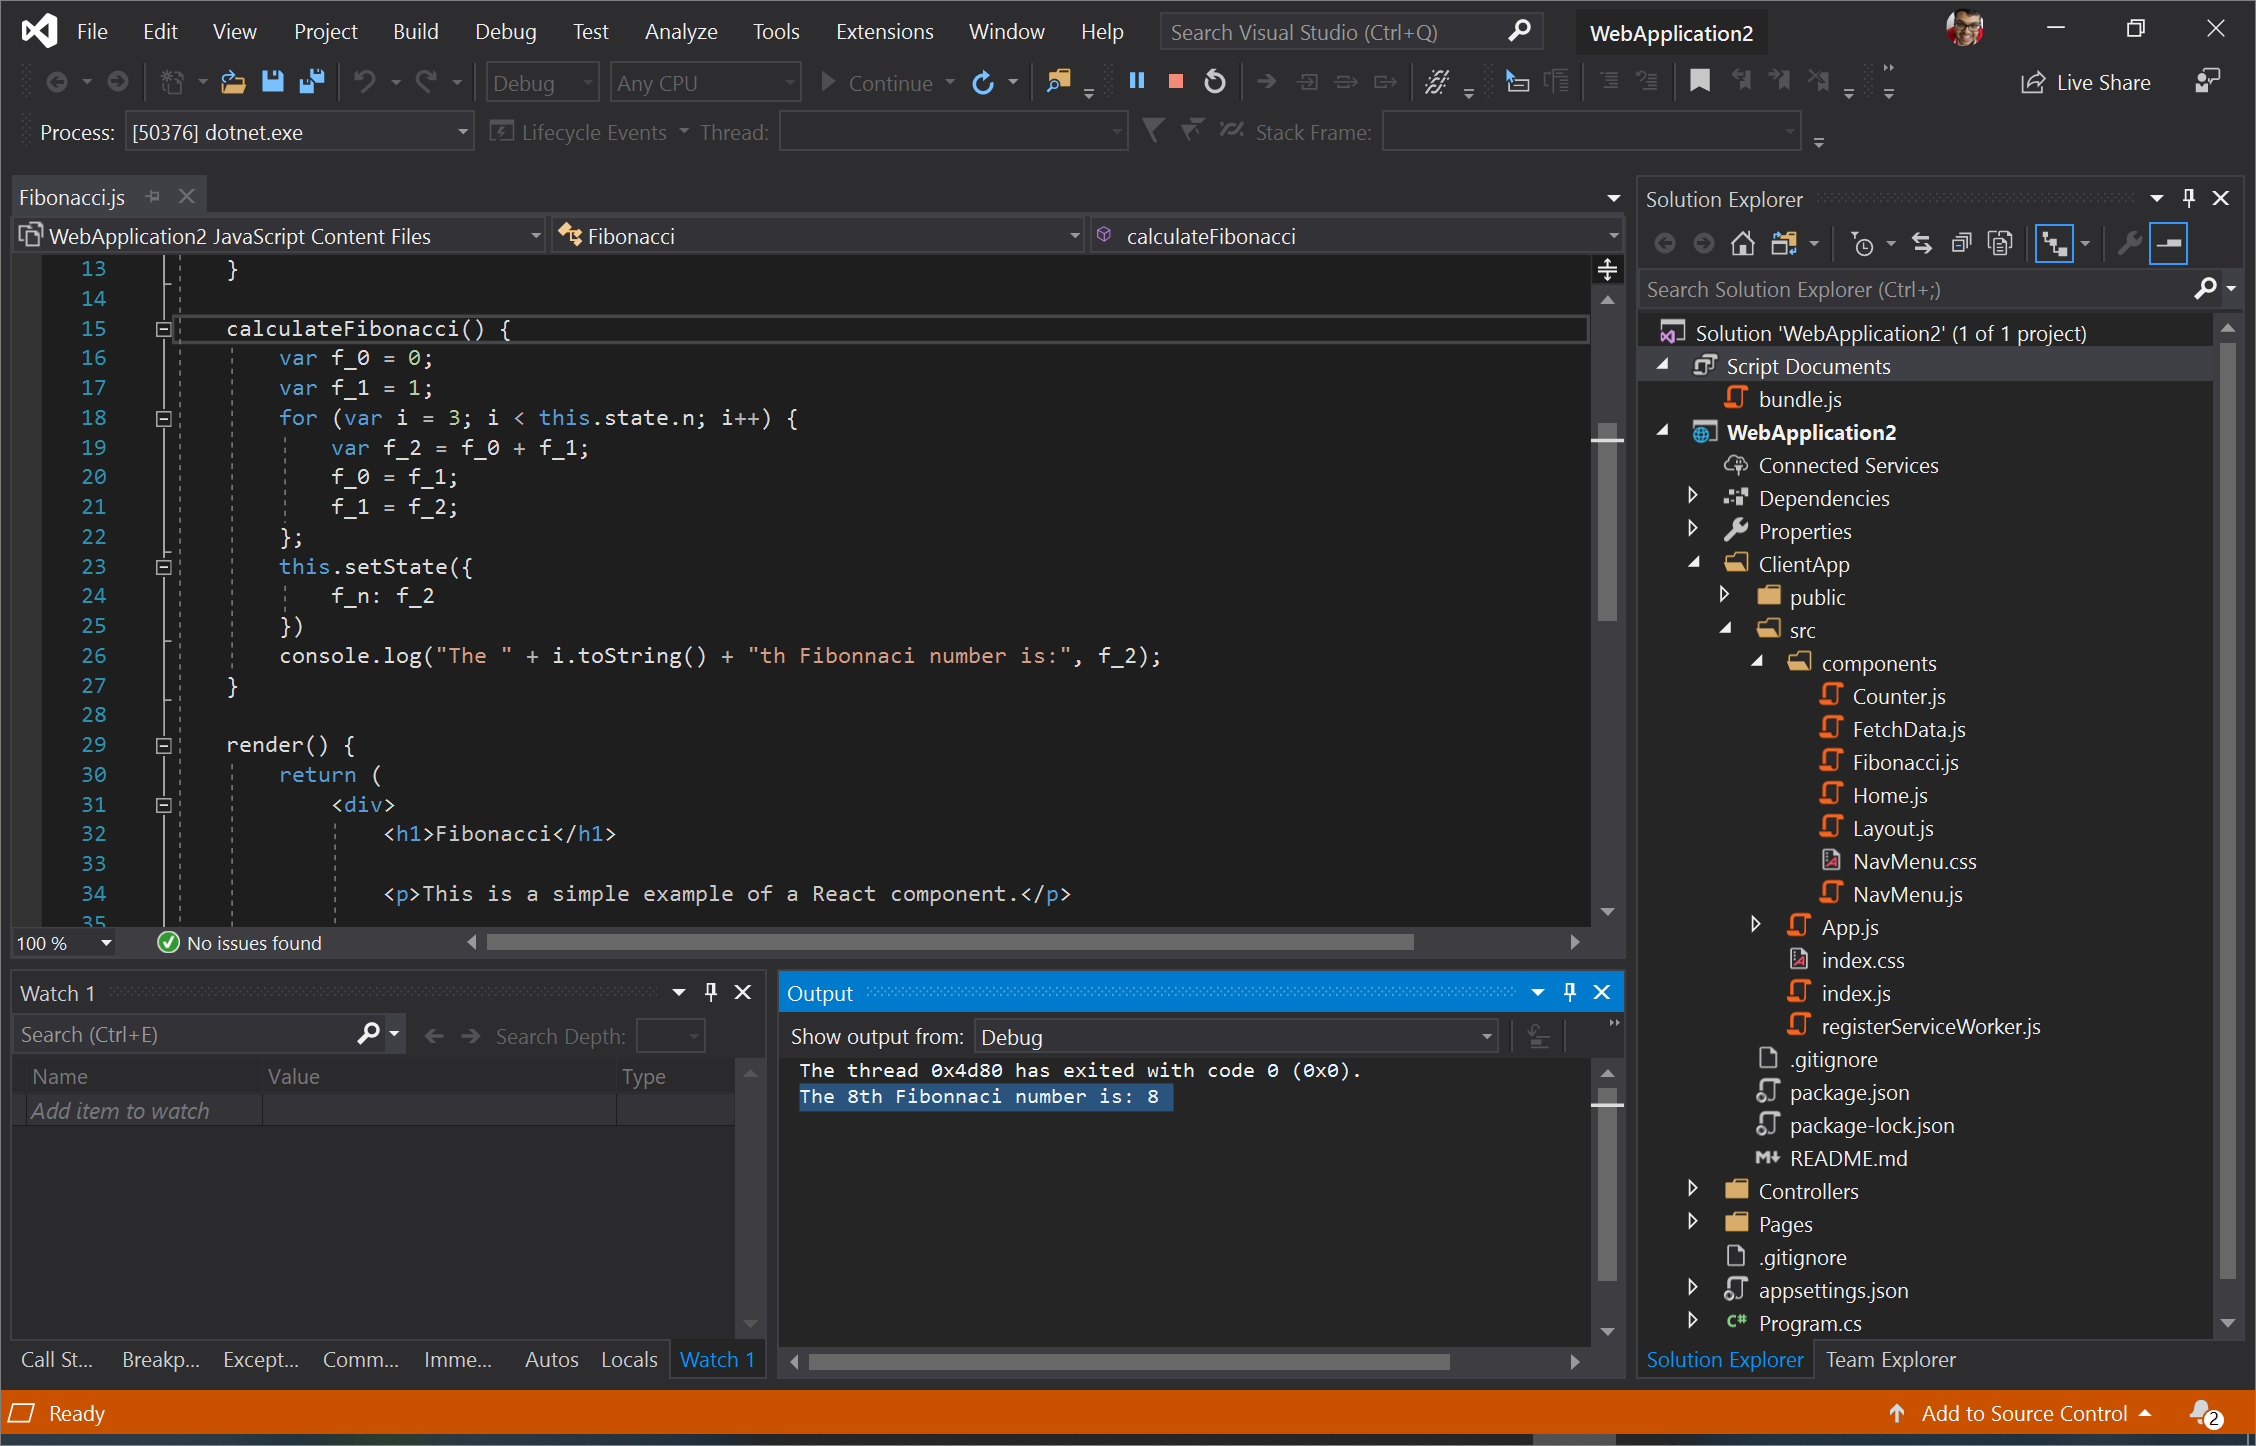 Screenshot of Visual Studio with our console.log statement shown in the Debug Output